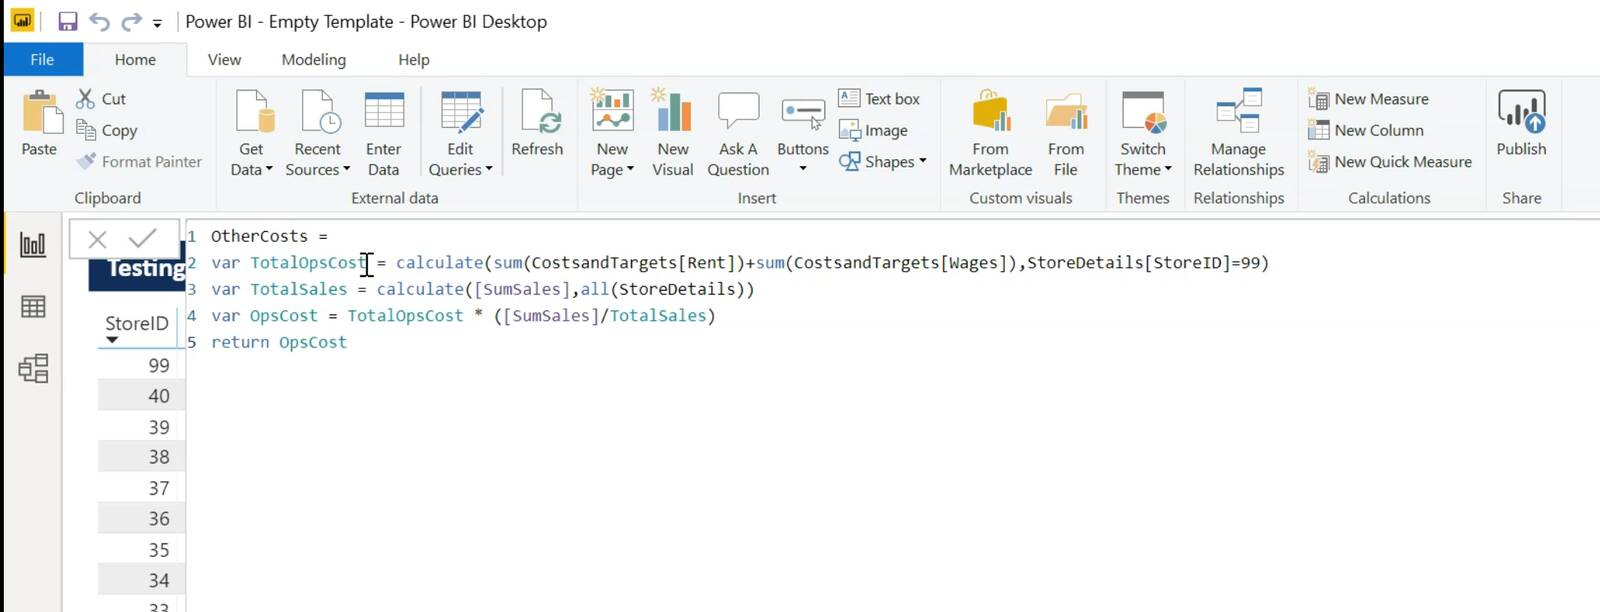 Power BI DAX language example